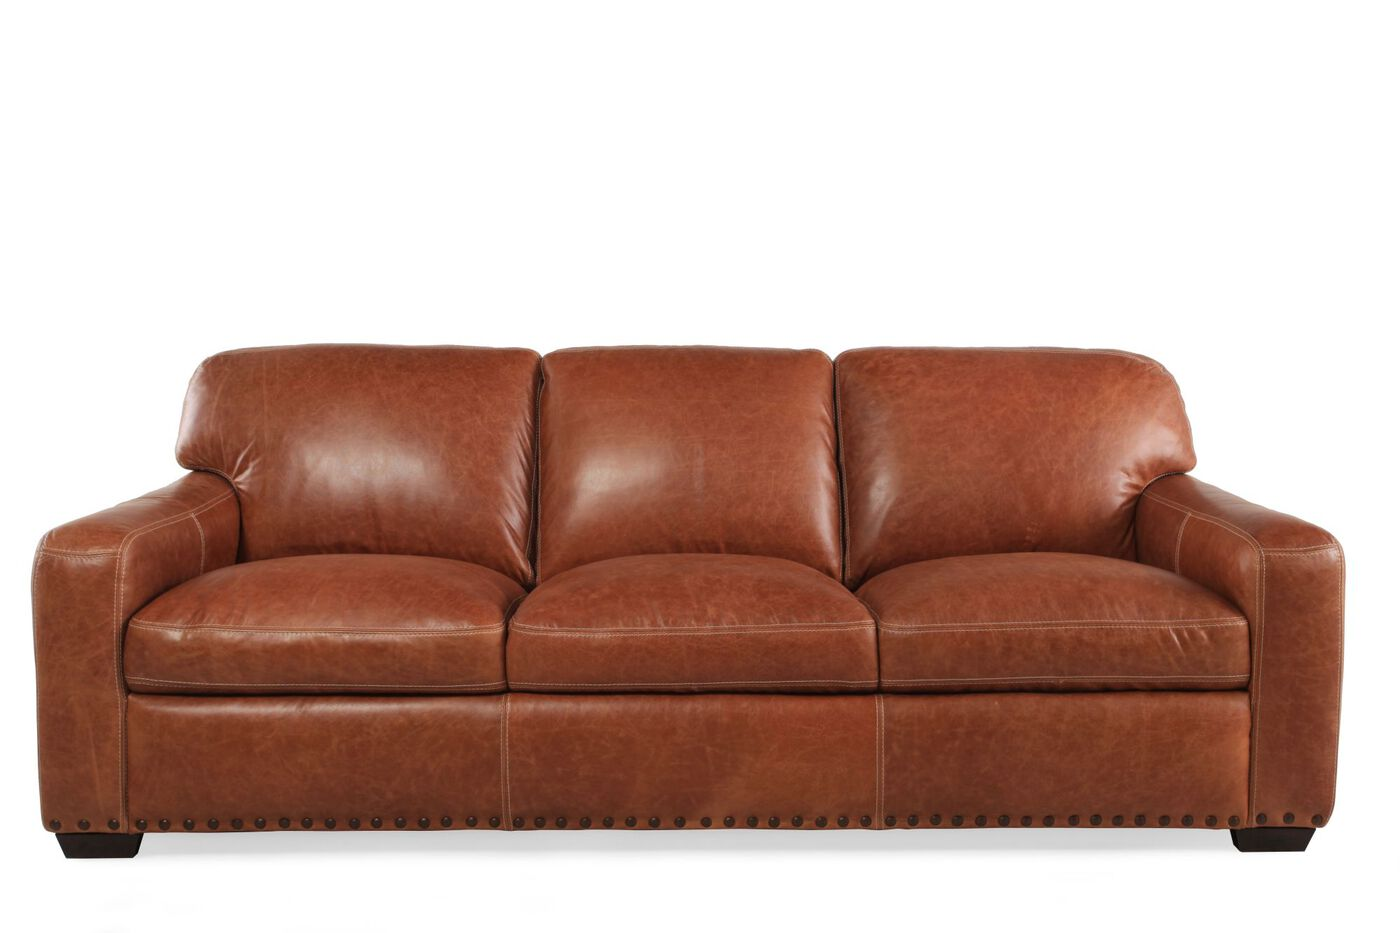 nailhead accented leather 91 sofa in saddle mathis brothers furniture. Black Bedroom Furniture Sets. Home Design Ideas